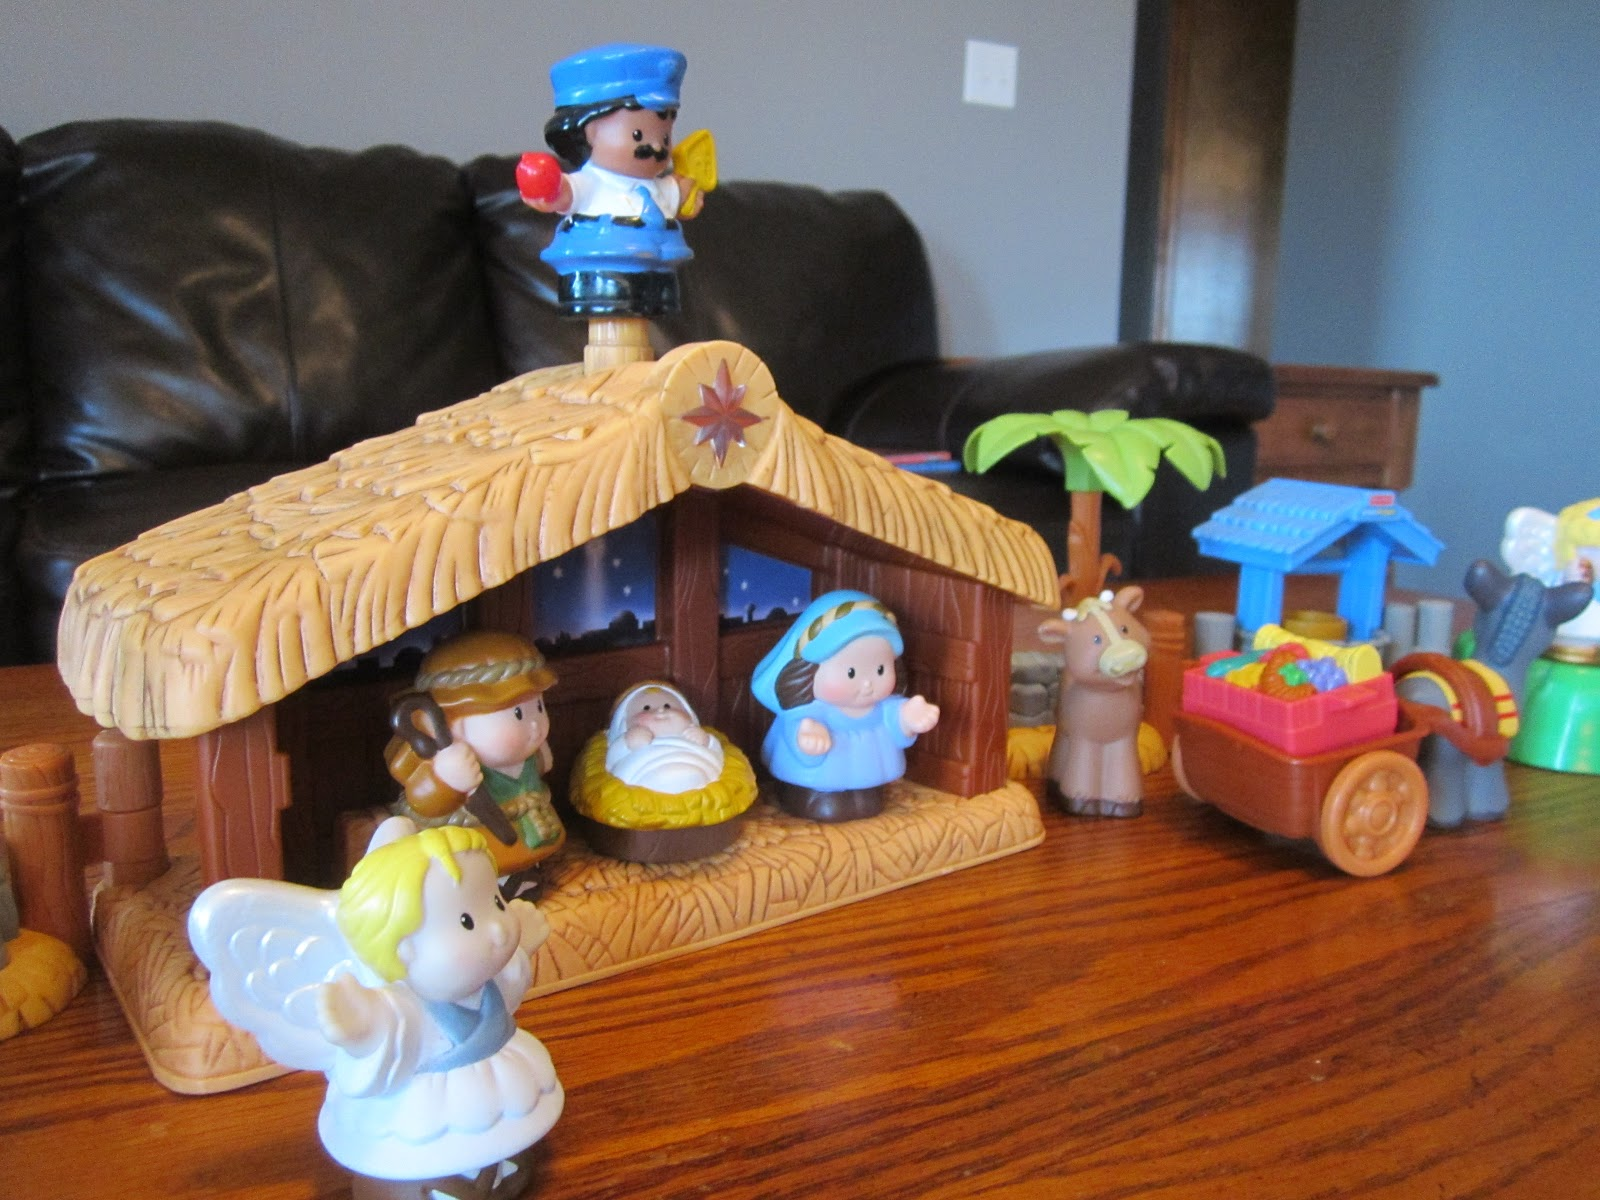 crazy sofa ride antique victorian sofas pontifications of a twin mom the one where baby jesus was